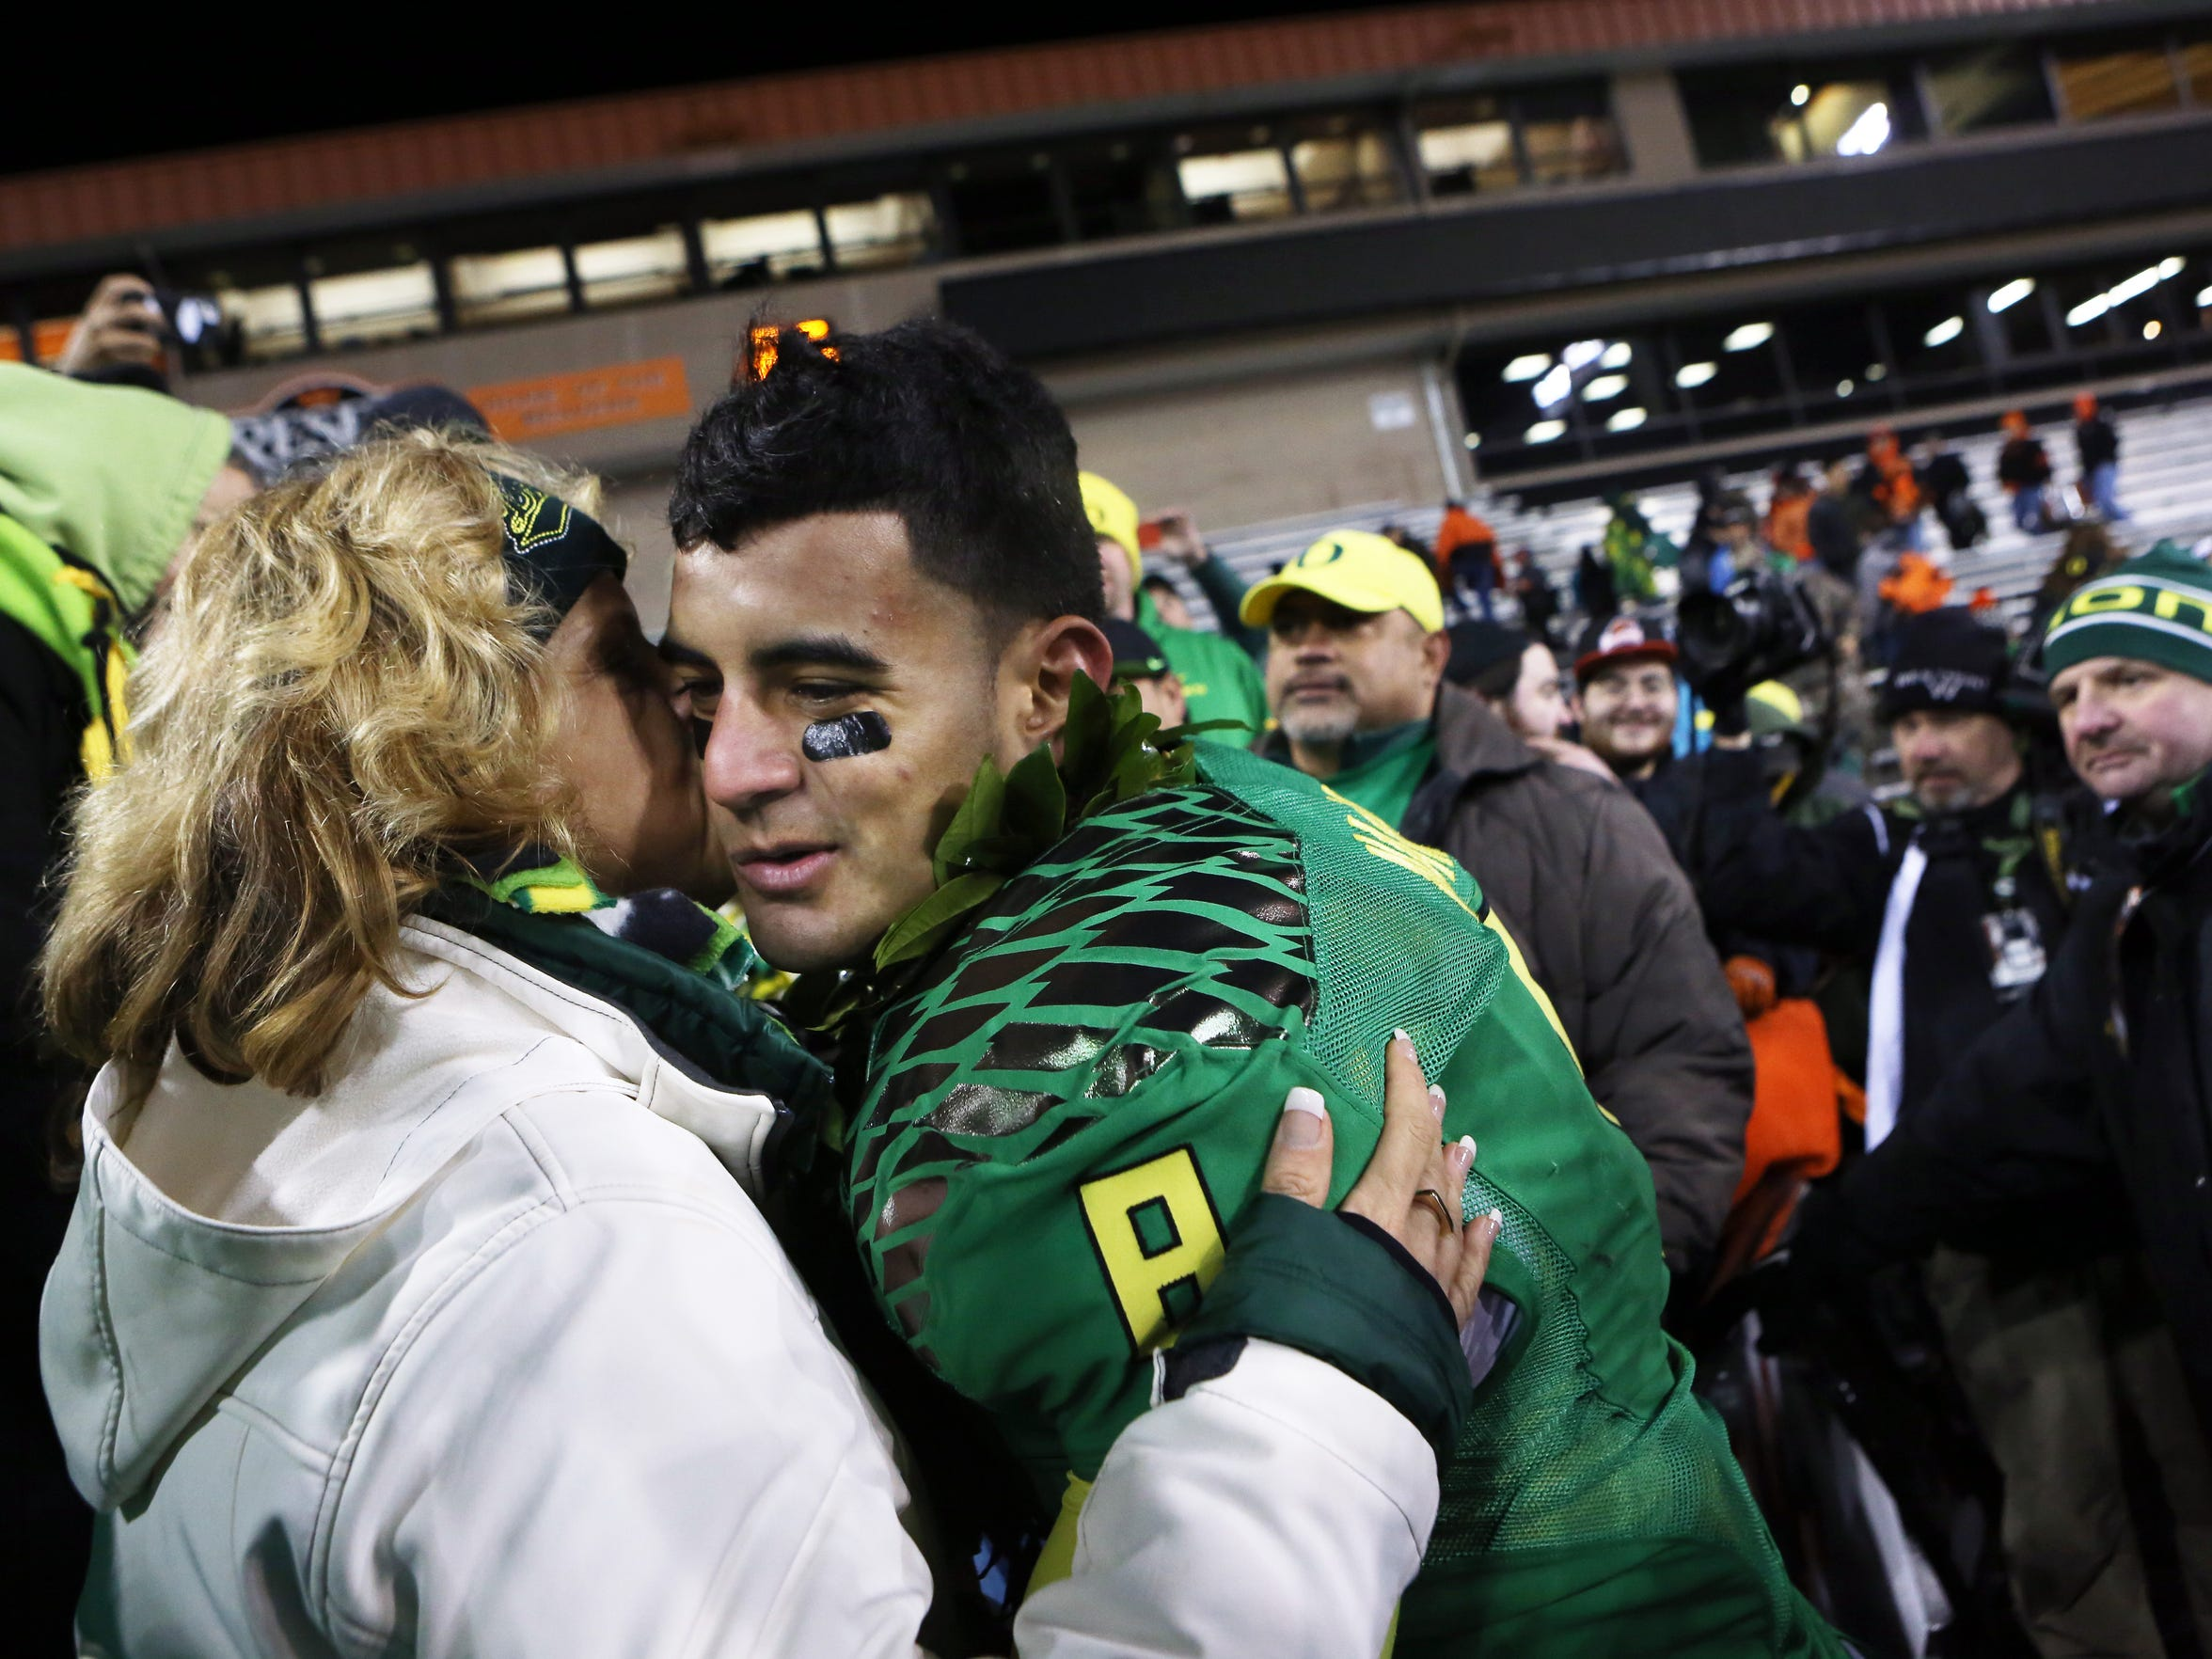 Marcus Mariota gets hugs and kisses from family members after the Ducks blew out the Beavers 47-19 in the annual Civil War game between Oregon and Oregon State in 2014 at Reser Stadium in Corvallis.